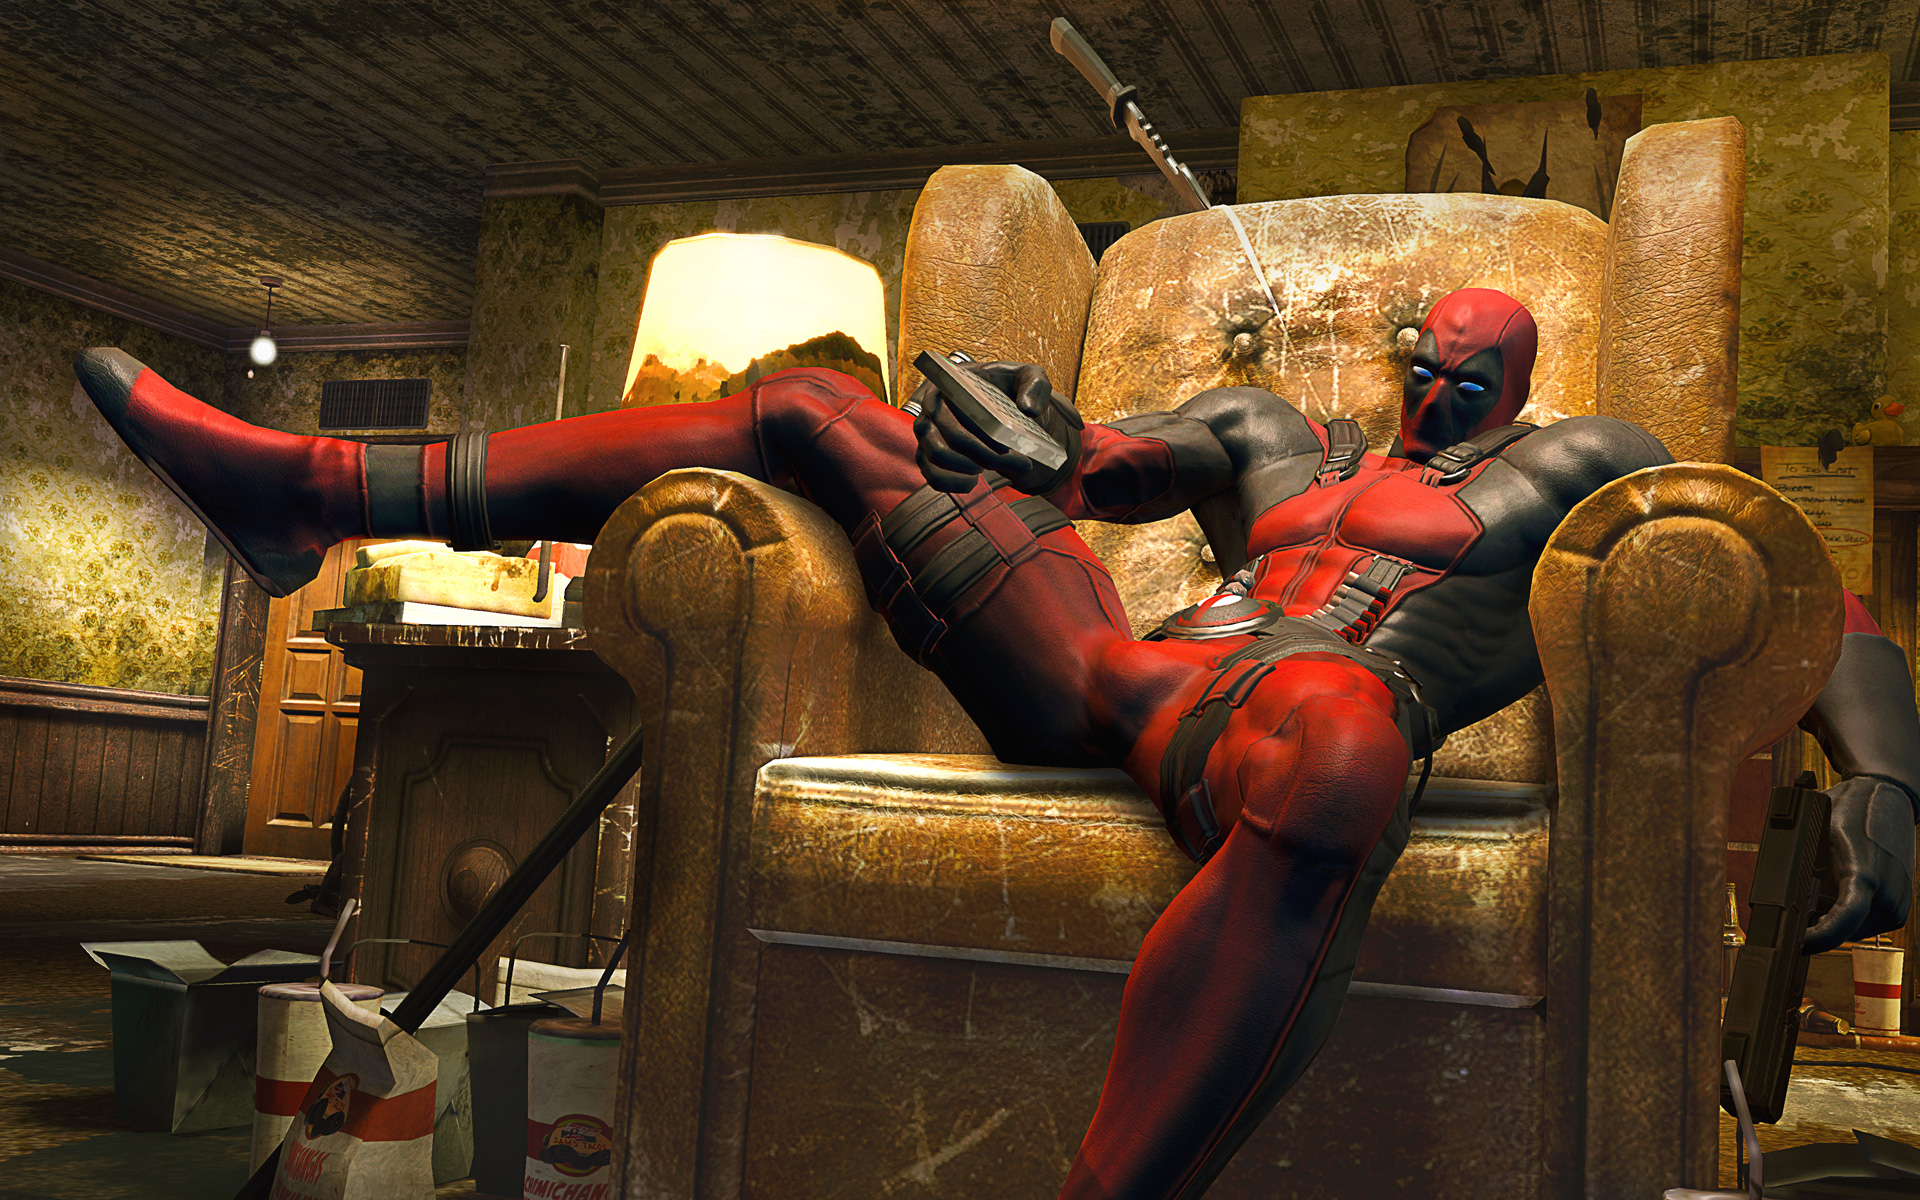 Cool Deadpool Wallpaper High Resolution HD Video Games Wallpapers 1920x1200